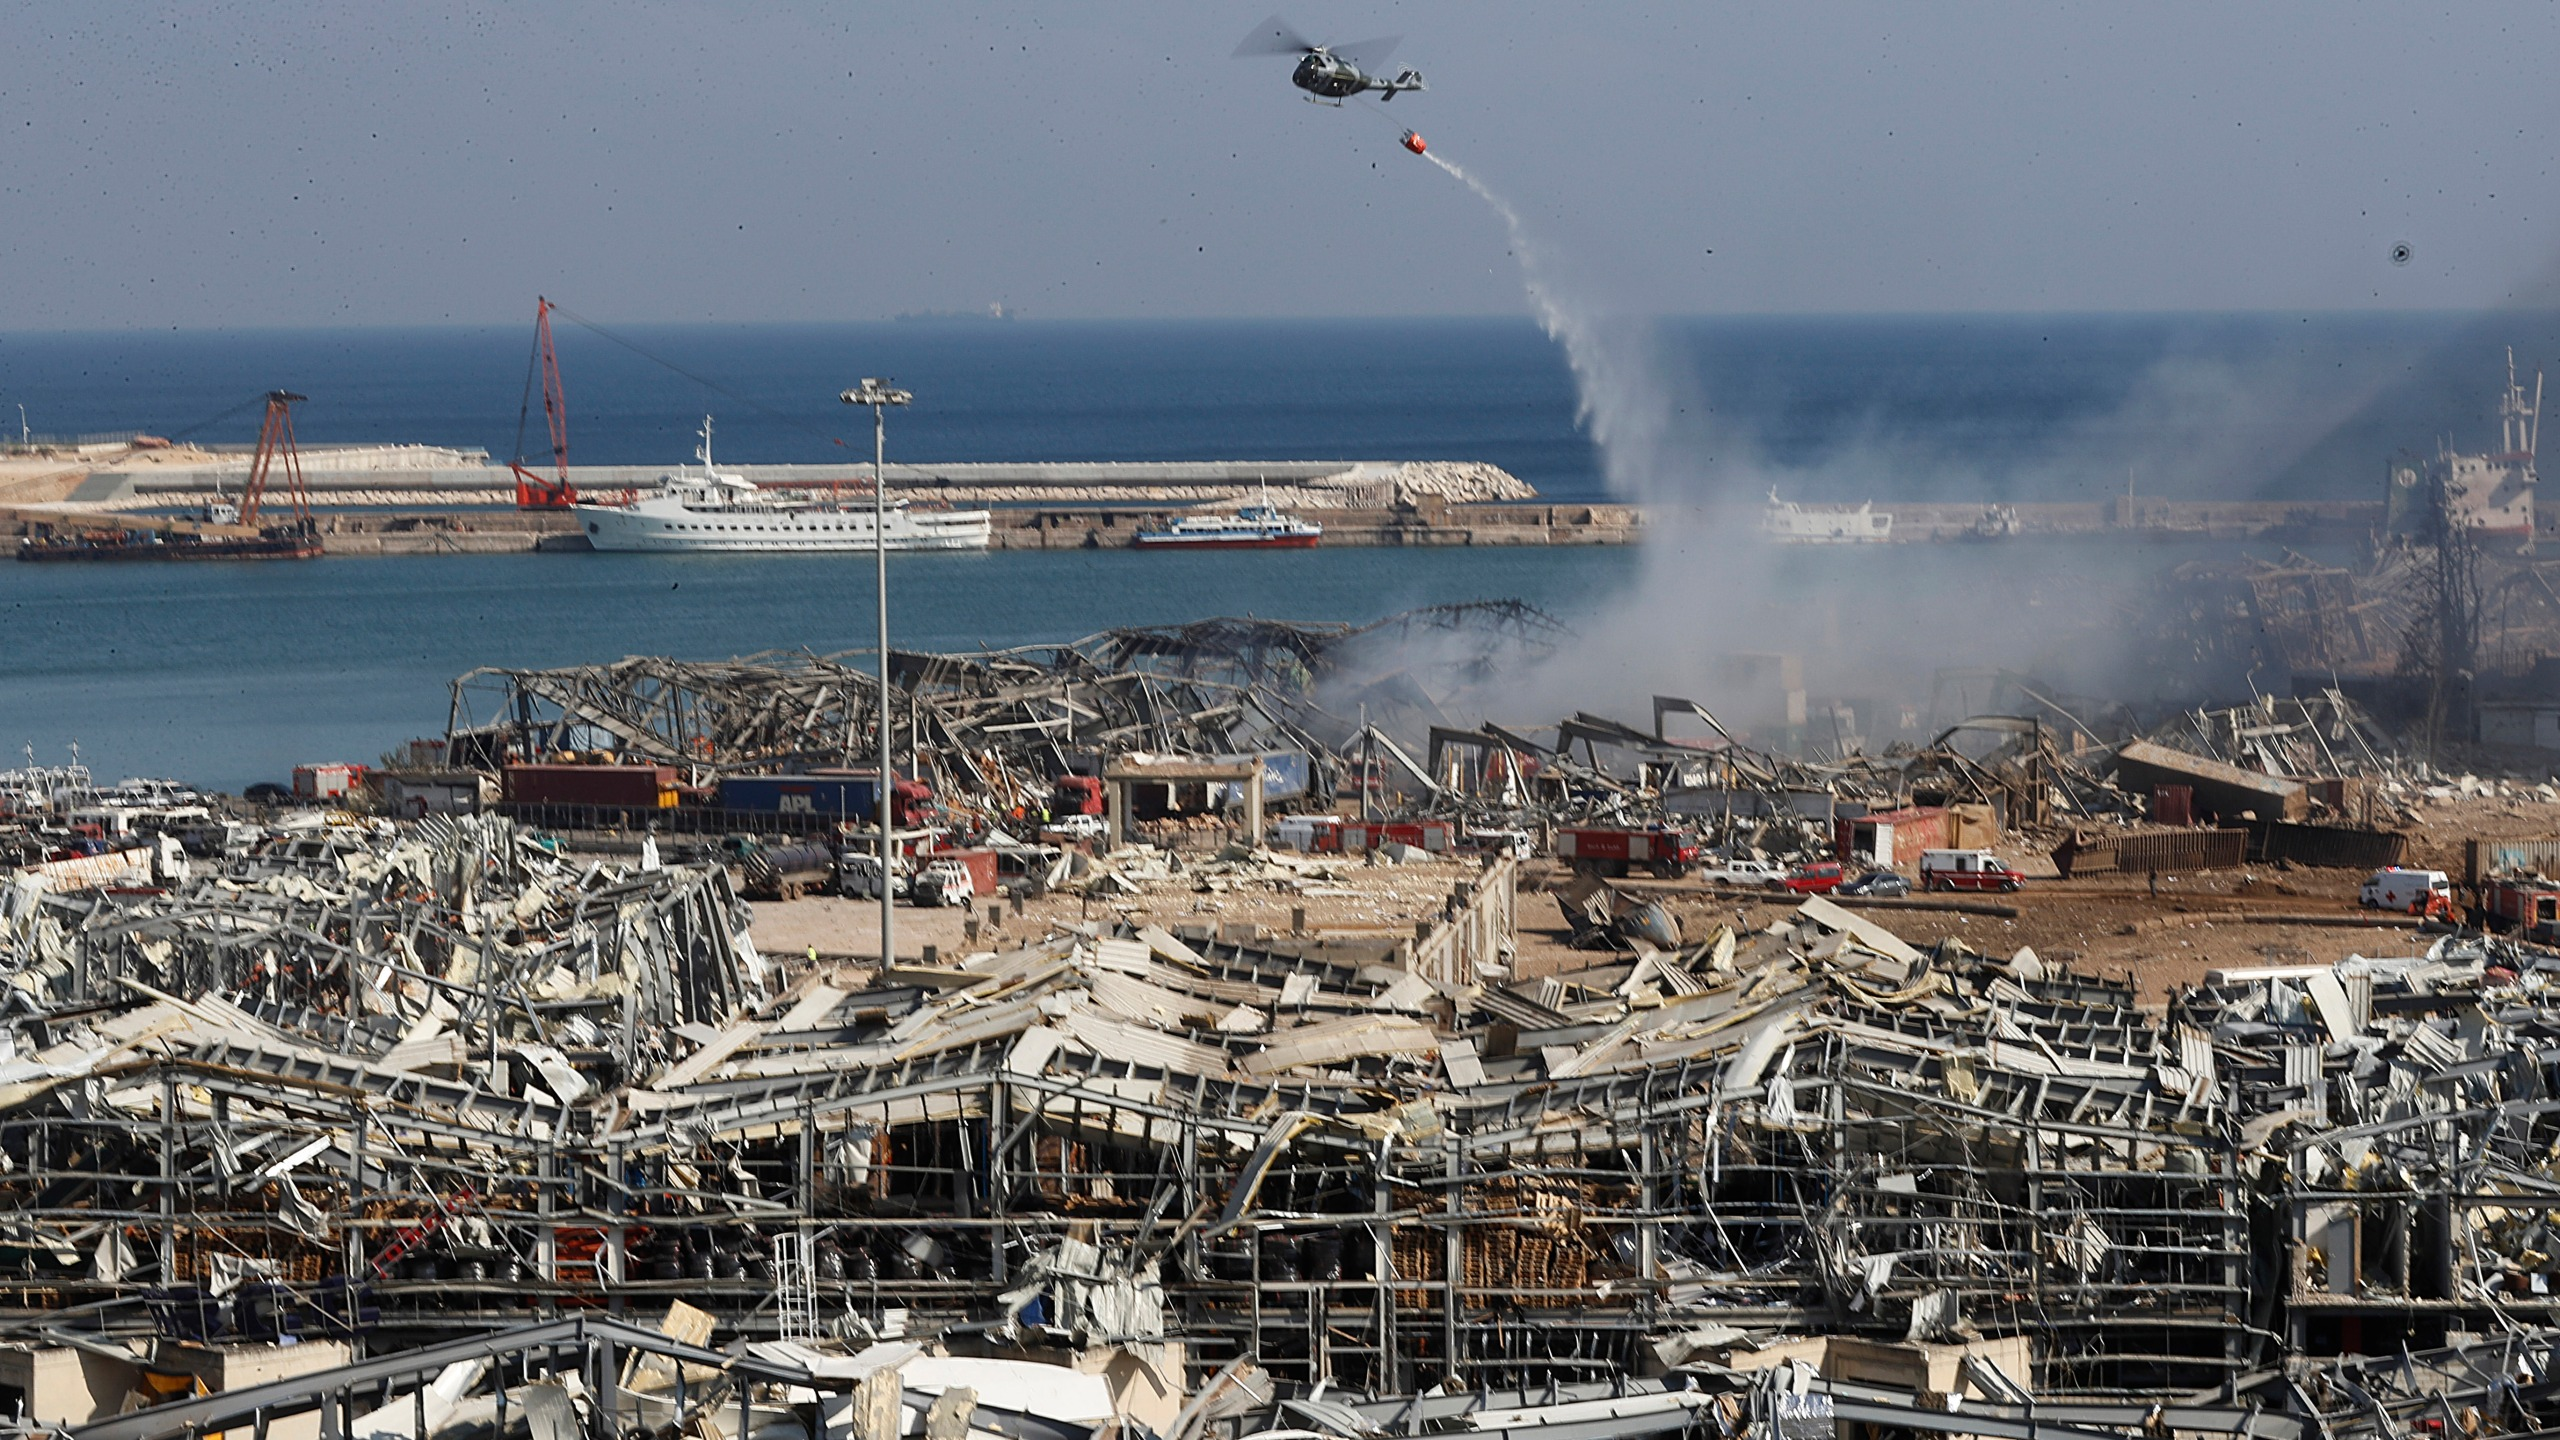 A Lebanese army helicopter throw water at the scene where an explosion hit the seaport of Beirut, Lebanon, Wednesday, Aug. 5, 2020. (AP Photo/Hussein Malla)